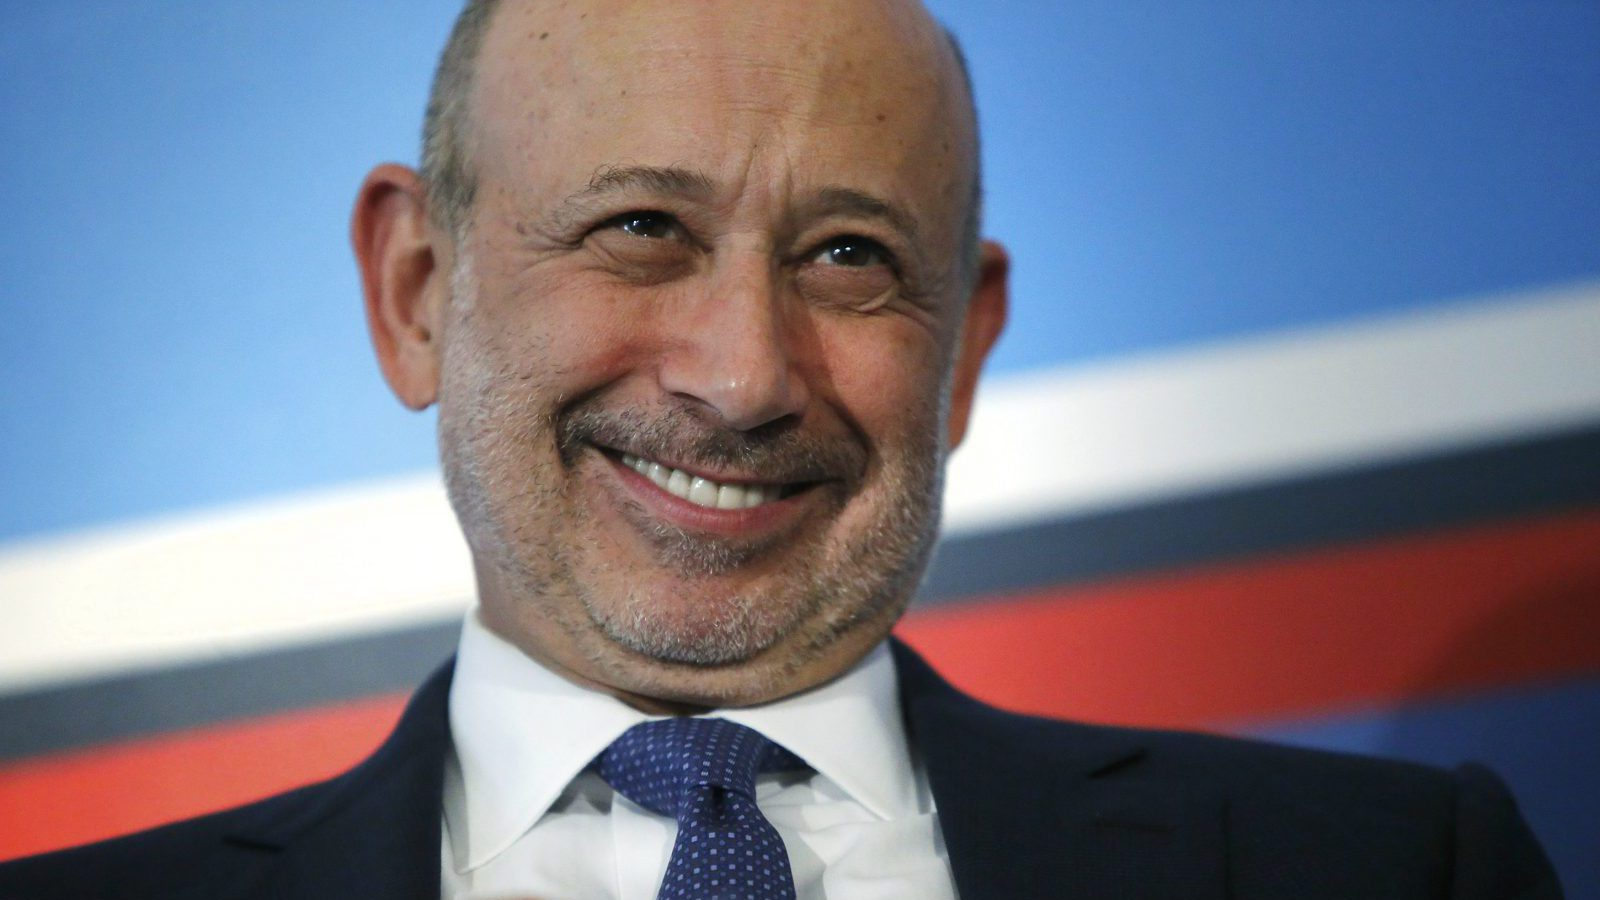 Goldman Sachs Group, Inc. Chairman and Chief Executive Officer Lloyd Blankfein smiles as he participates in a panel discussion during the White House Summit on Working Families in Washington June 23, 2014. President Barack Obama, as part of efforts to make the U.S. workplace more accommodating for employees with families, will on Monday direct federal agencies to step up efforts to give workers more leeway in determining their schedules.